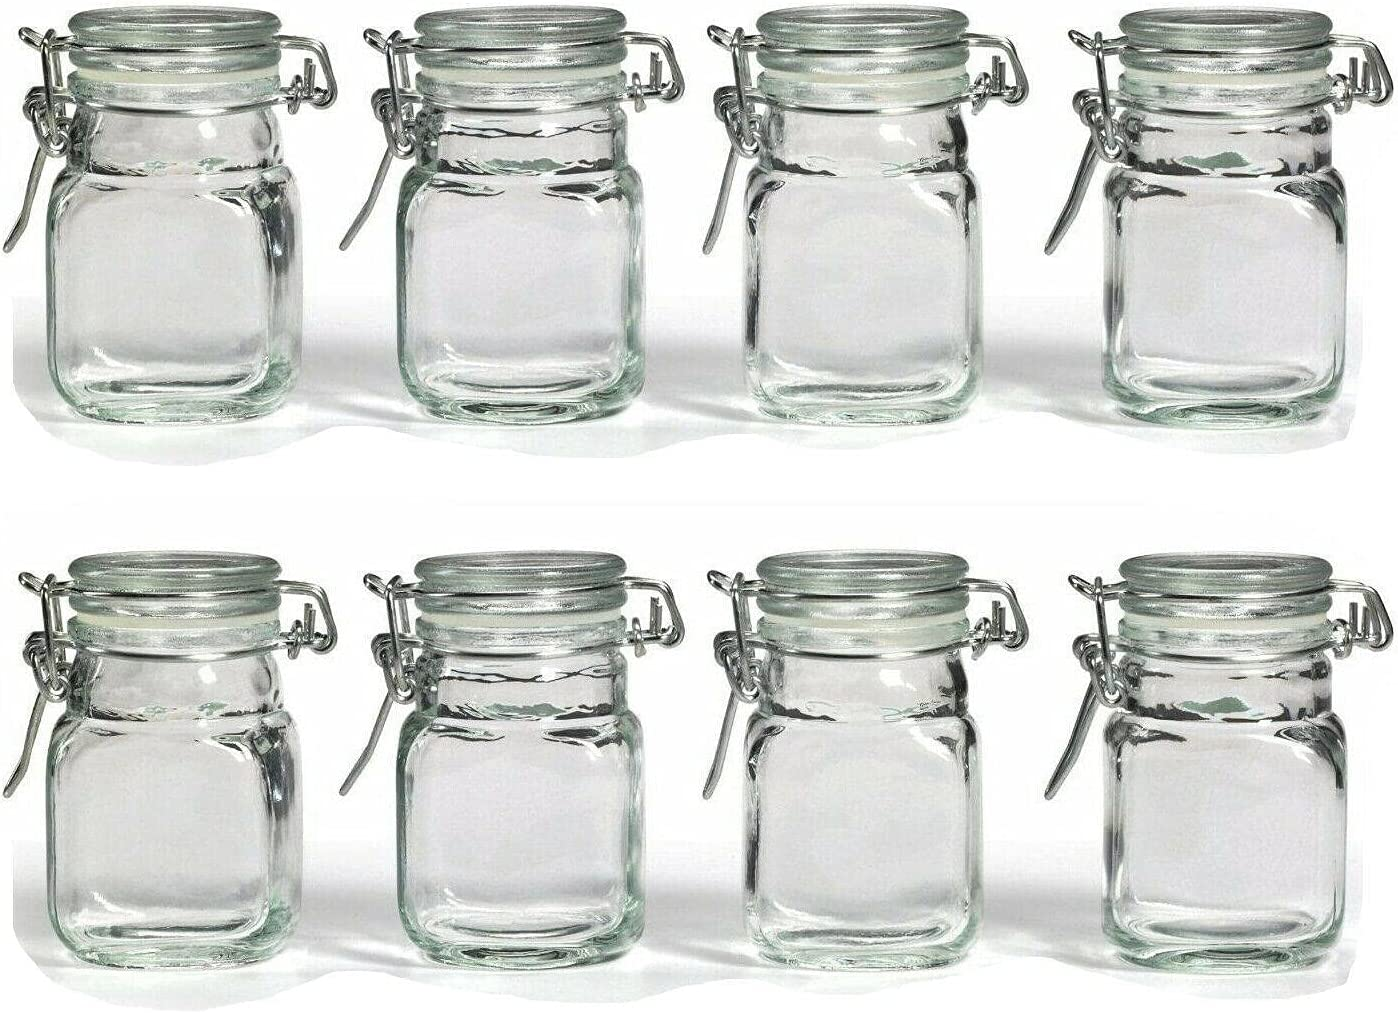 6pk Glass Jars w/ Hinge Clear Food Storage Containers Canisters Kitchen organization Kitchen decor Storage containers Spice jars Kitchen accessories Kitchen storage Food storage